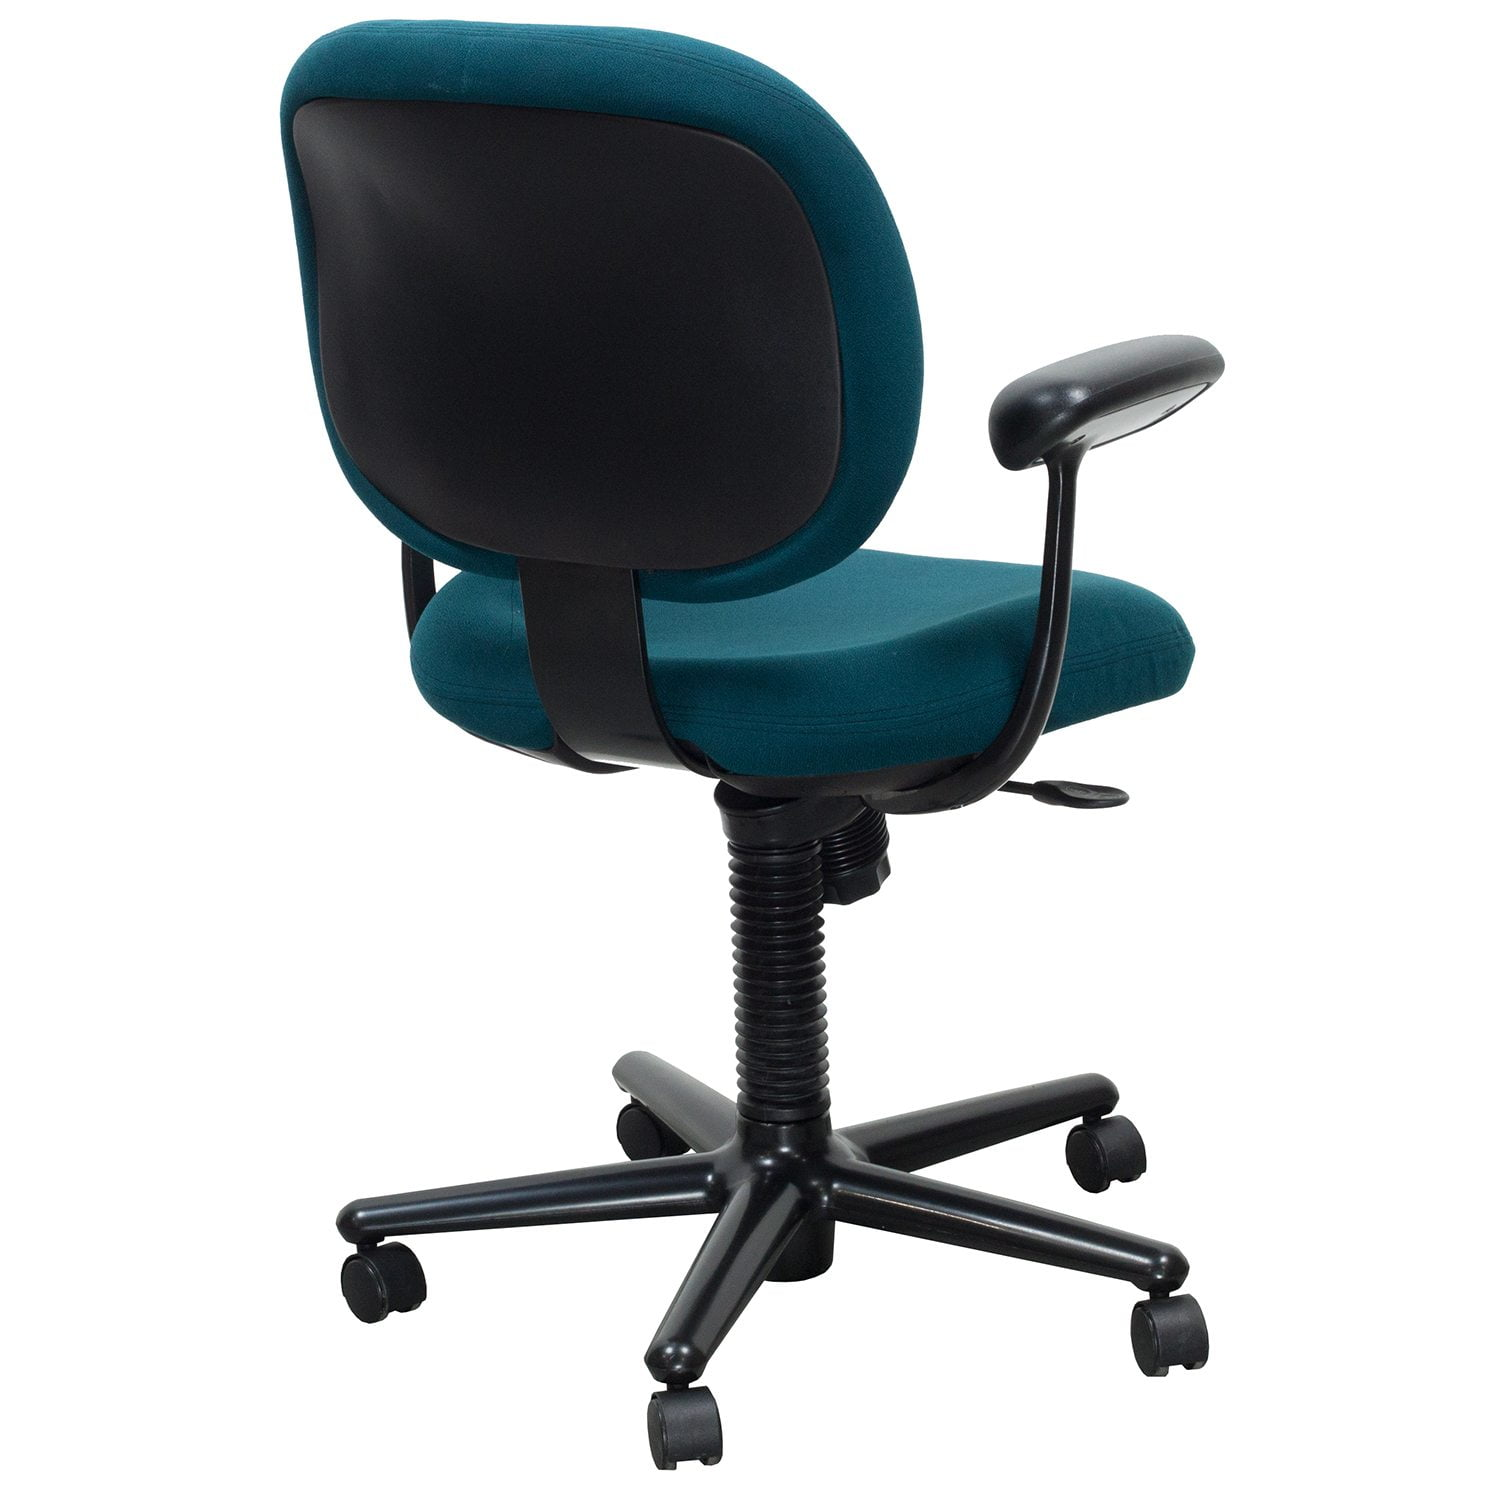 Teal Chair Herman Miller Ergon Used Task Chair Teal National